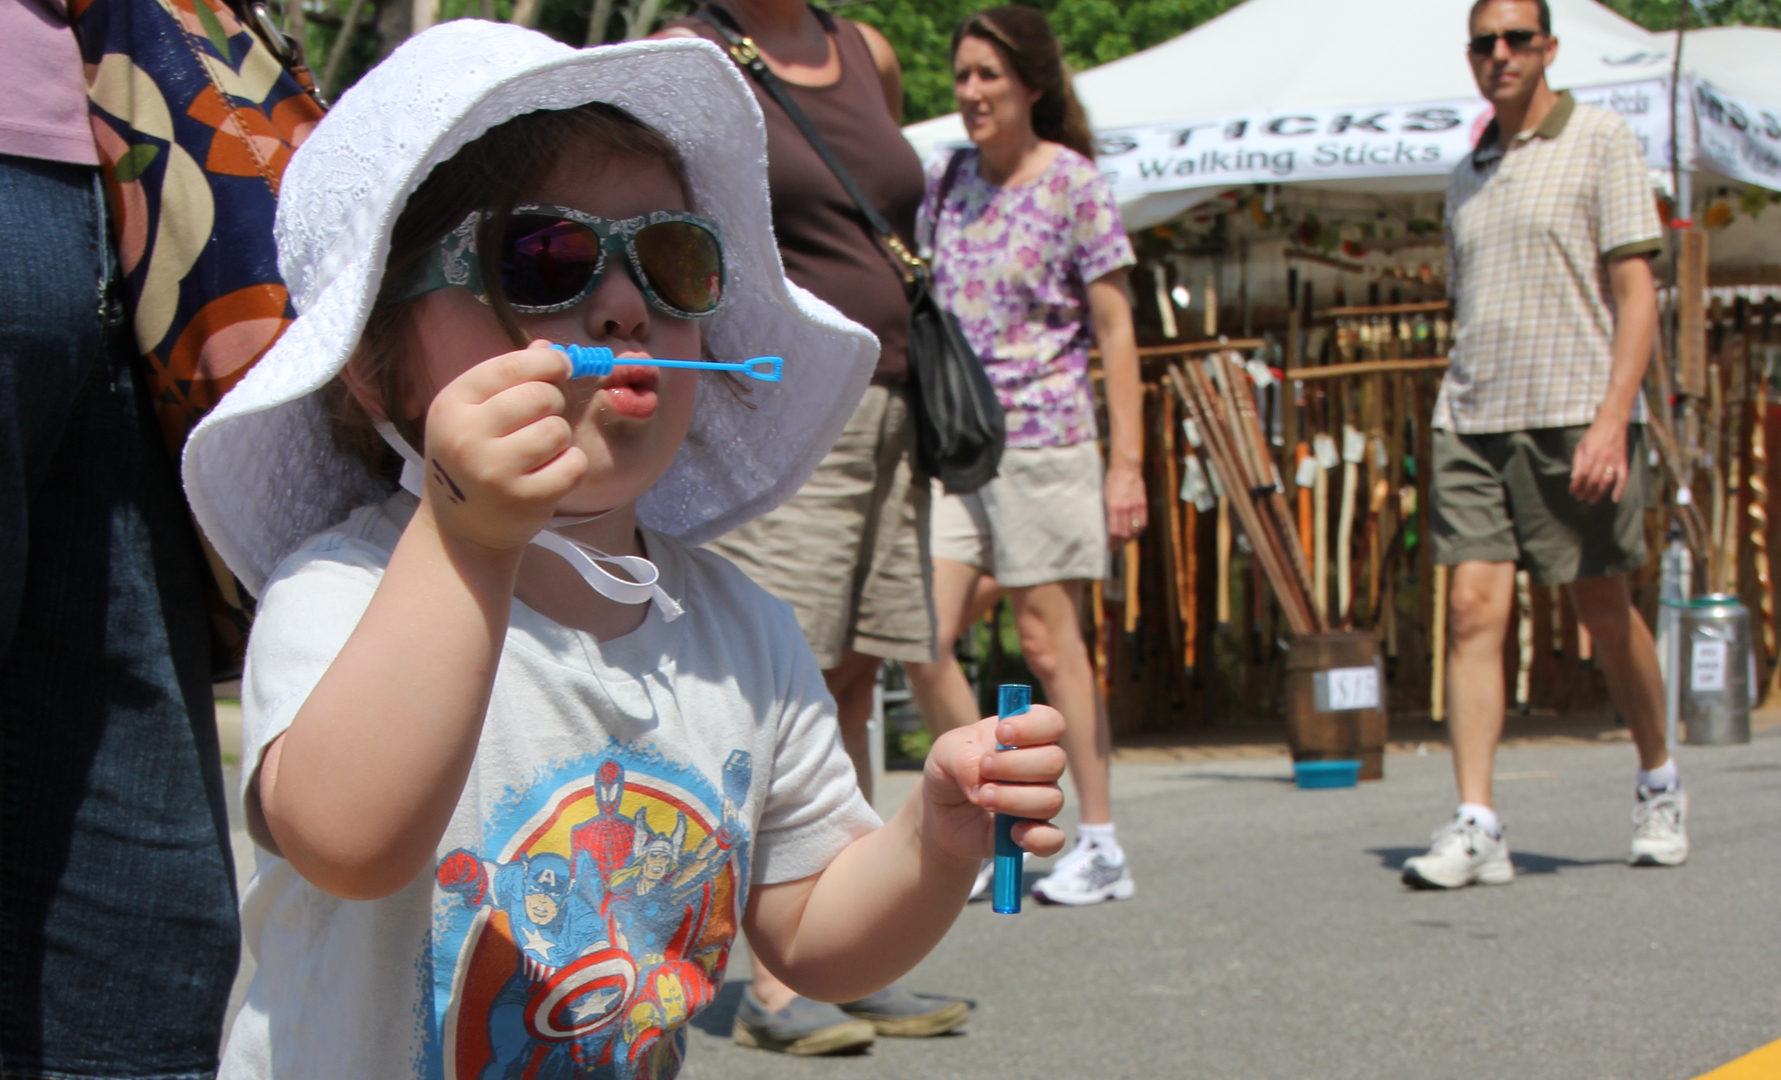 child blowing bubbles at arts and crafts festival